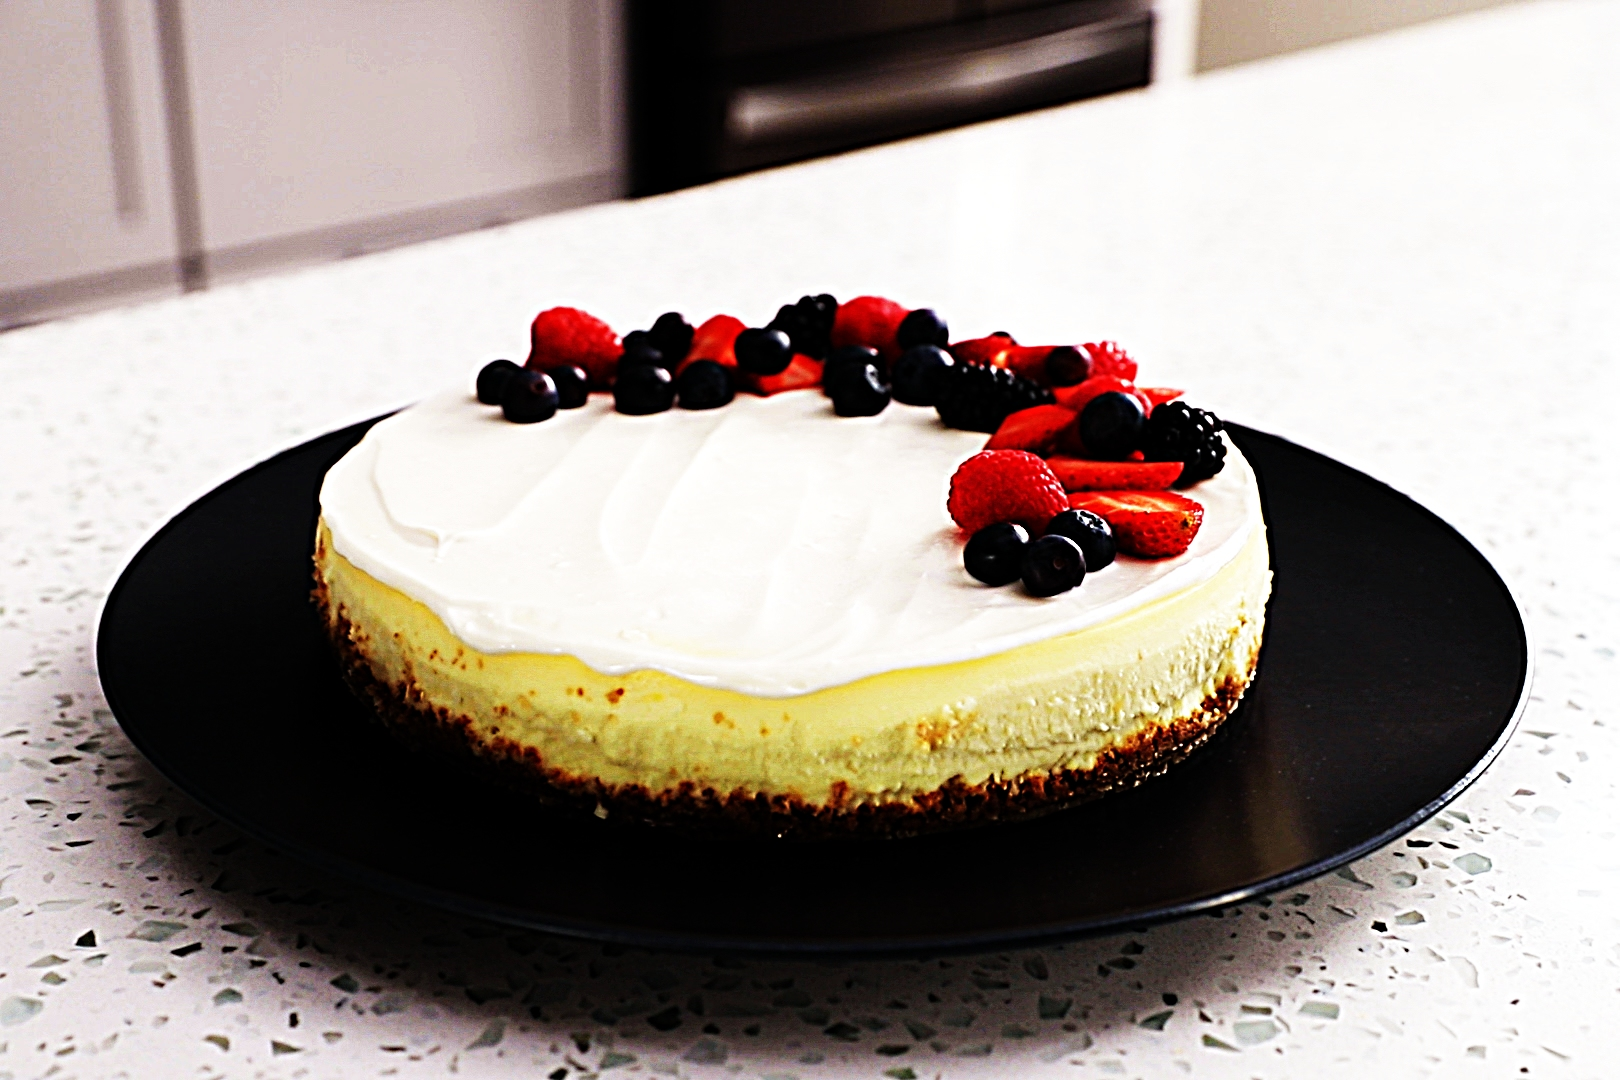 Stupid-Easy Recipe for New York-Style Cheesecake (Without Sour Cream) (#1 Top-Rated)